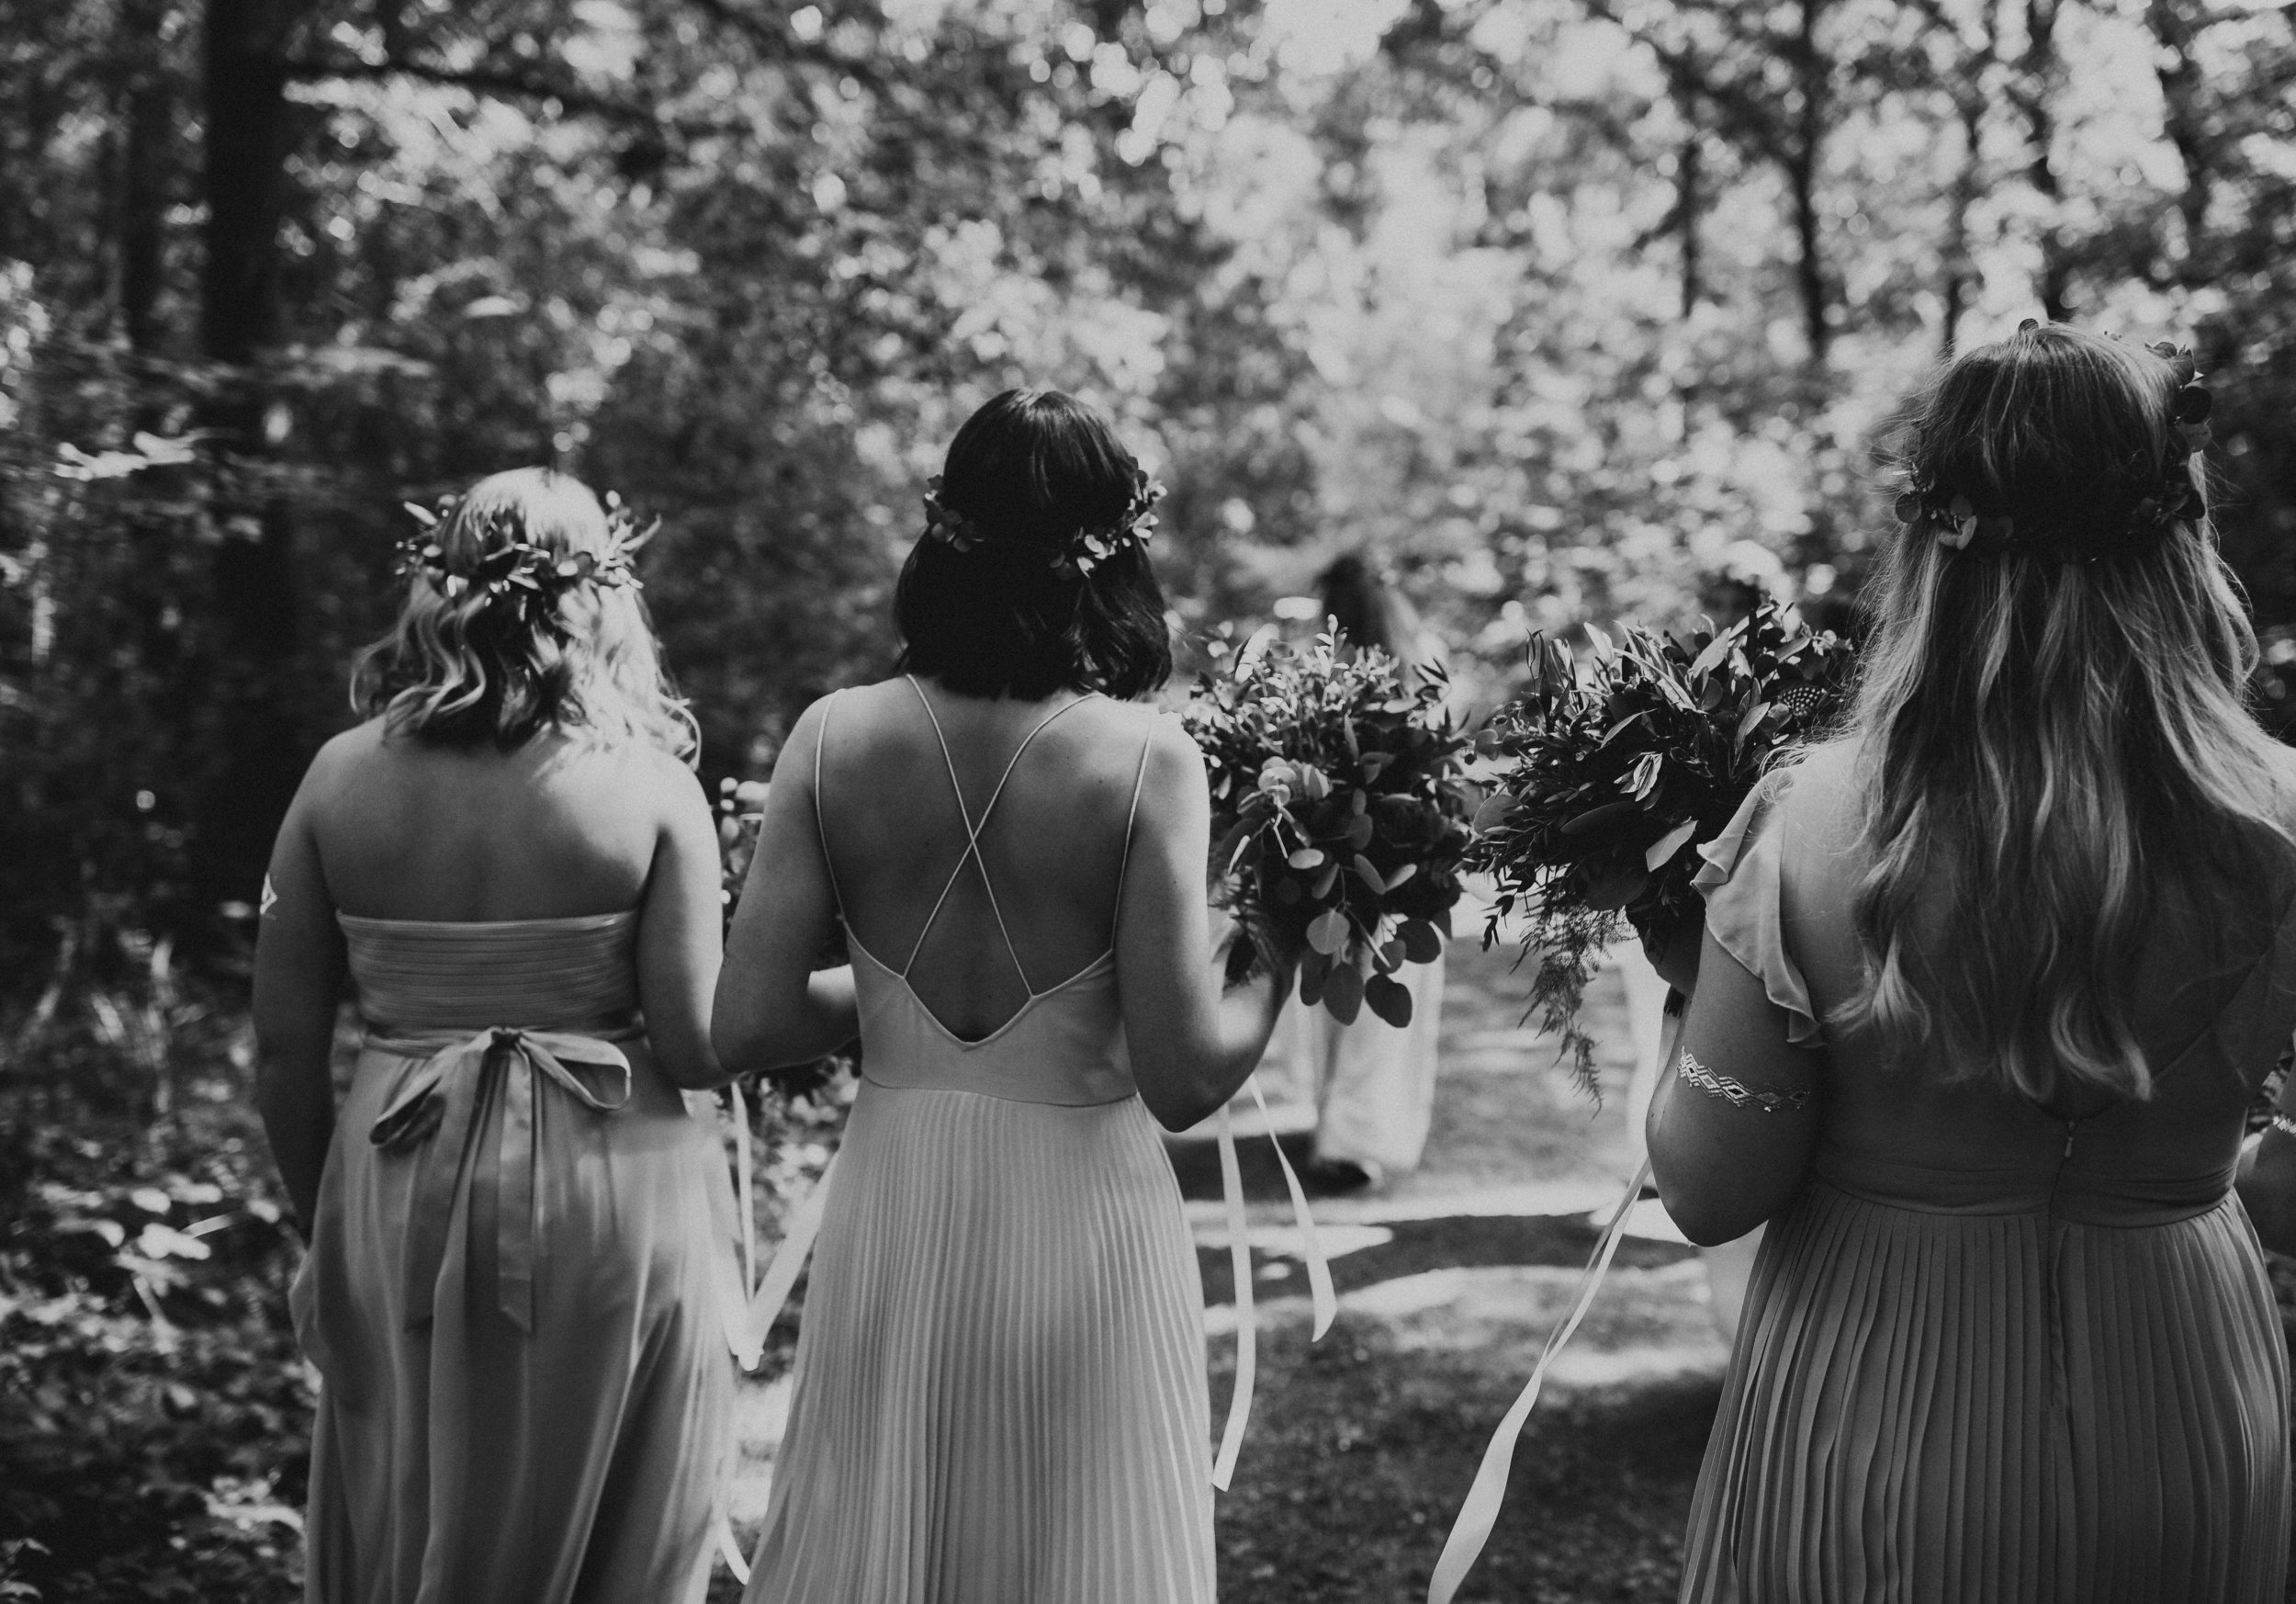 TWO_WOODS_ESTATE_WEDDING_PULBOROUGH_PJ_PHILLIPS_PHOTOGRAPHY_FRAN_&_GEORGE_64.jpg